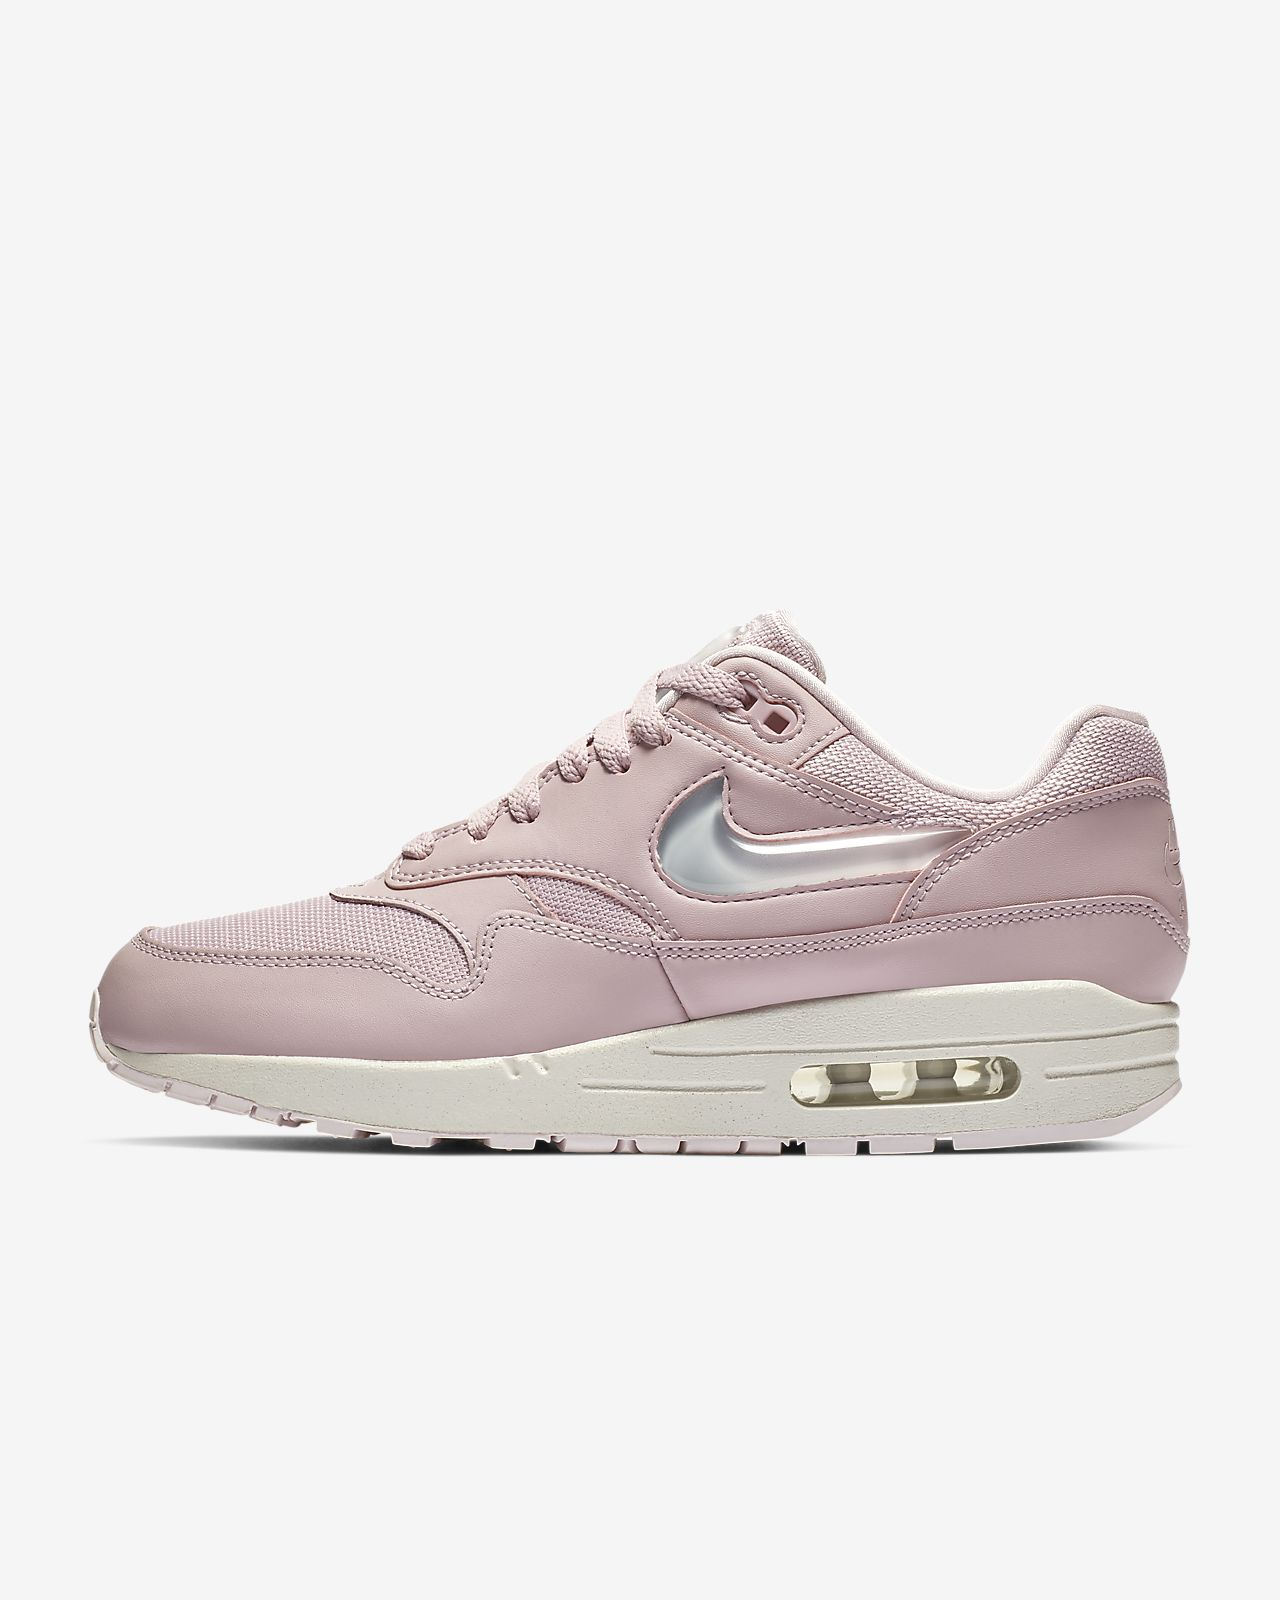 timeless design 29a69 725fa ... Nike Air Max 1 Premium Womens Shoe